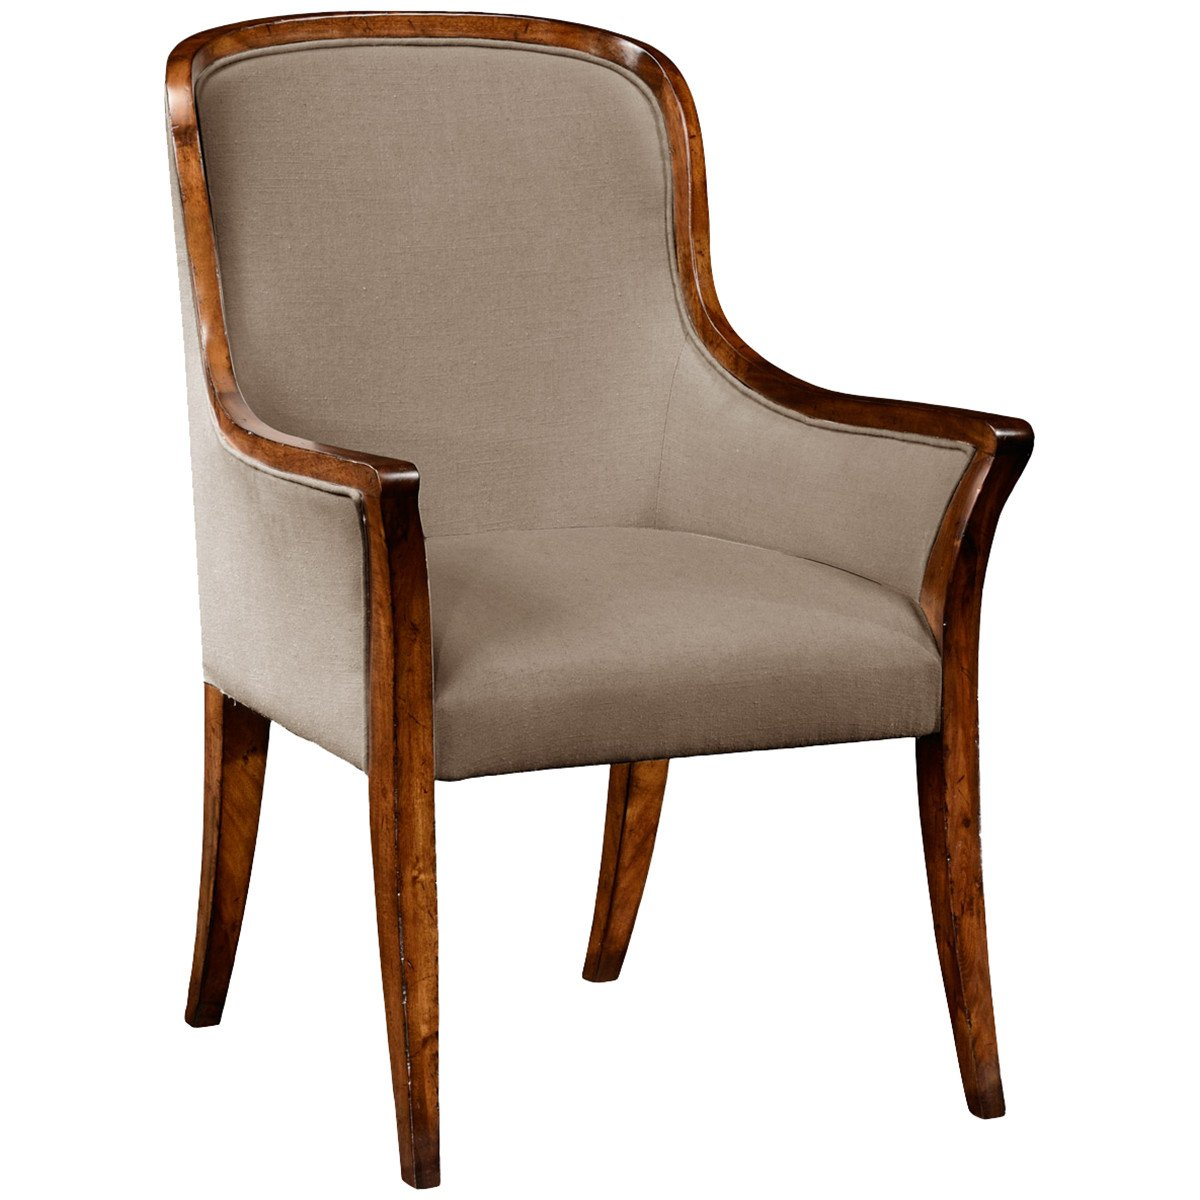 Jonathan Charles Low Curved Back Upholstered Dining